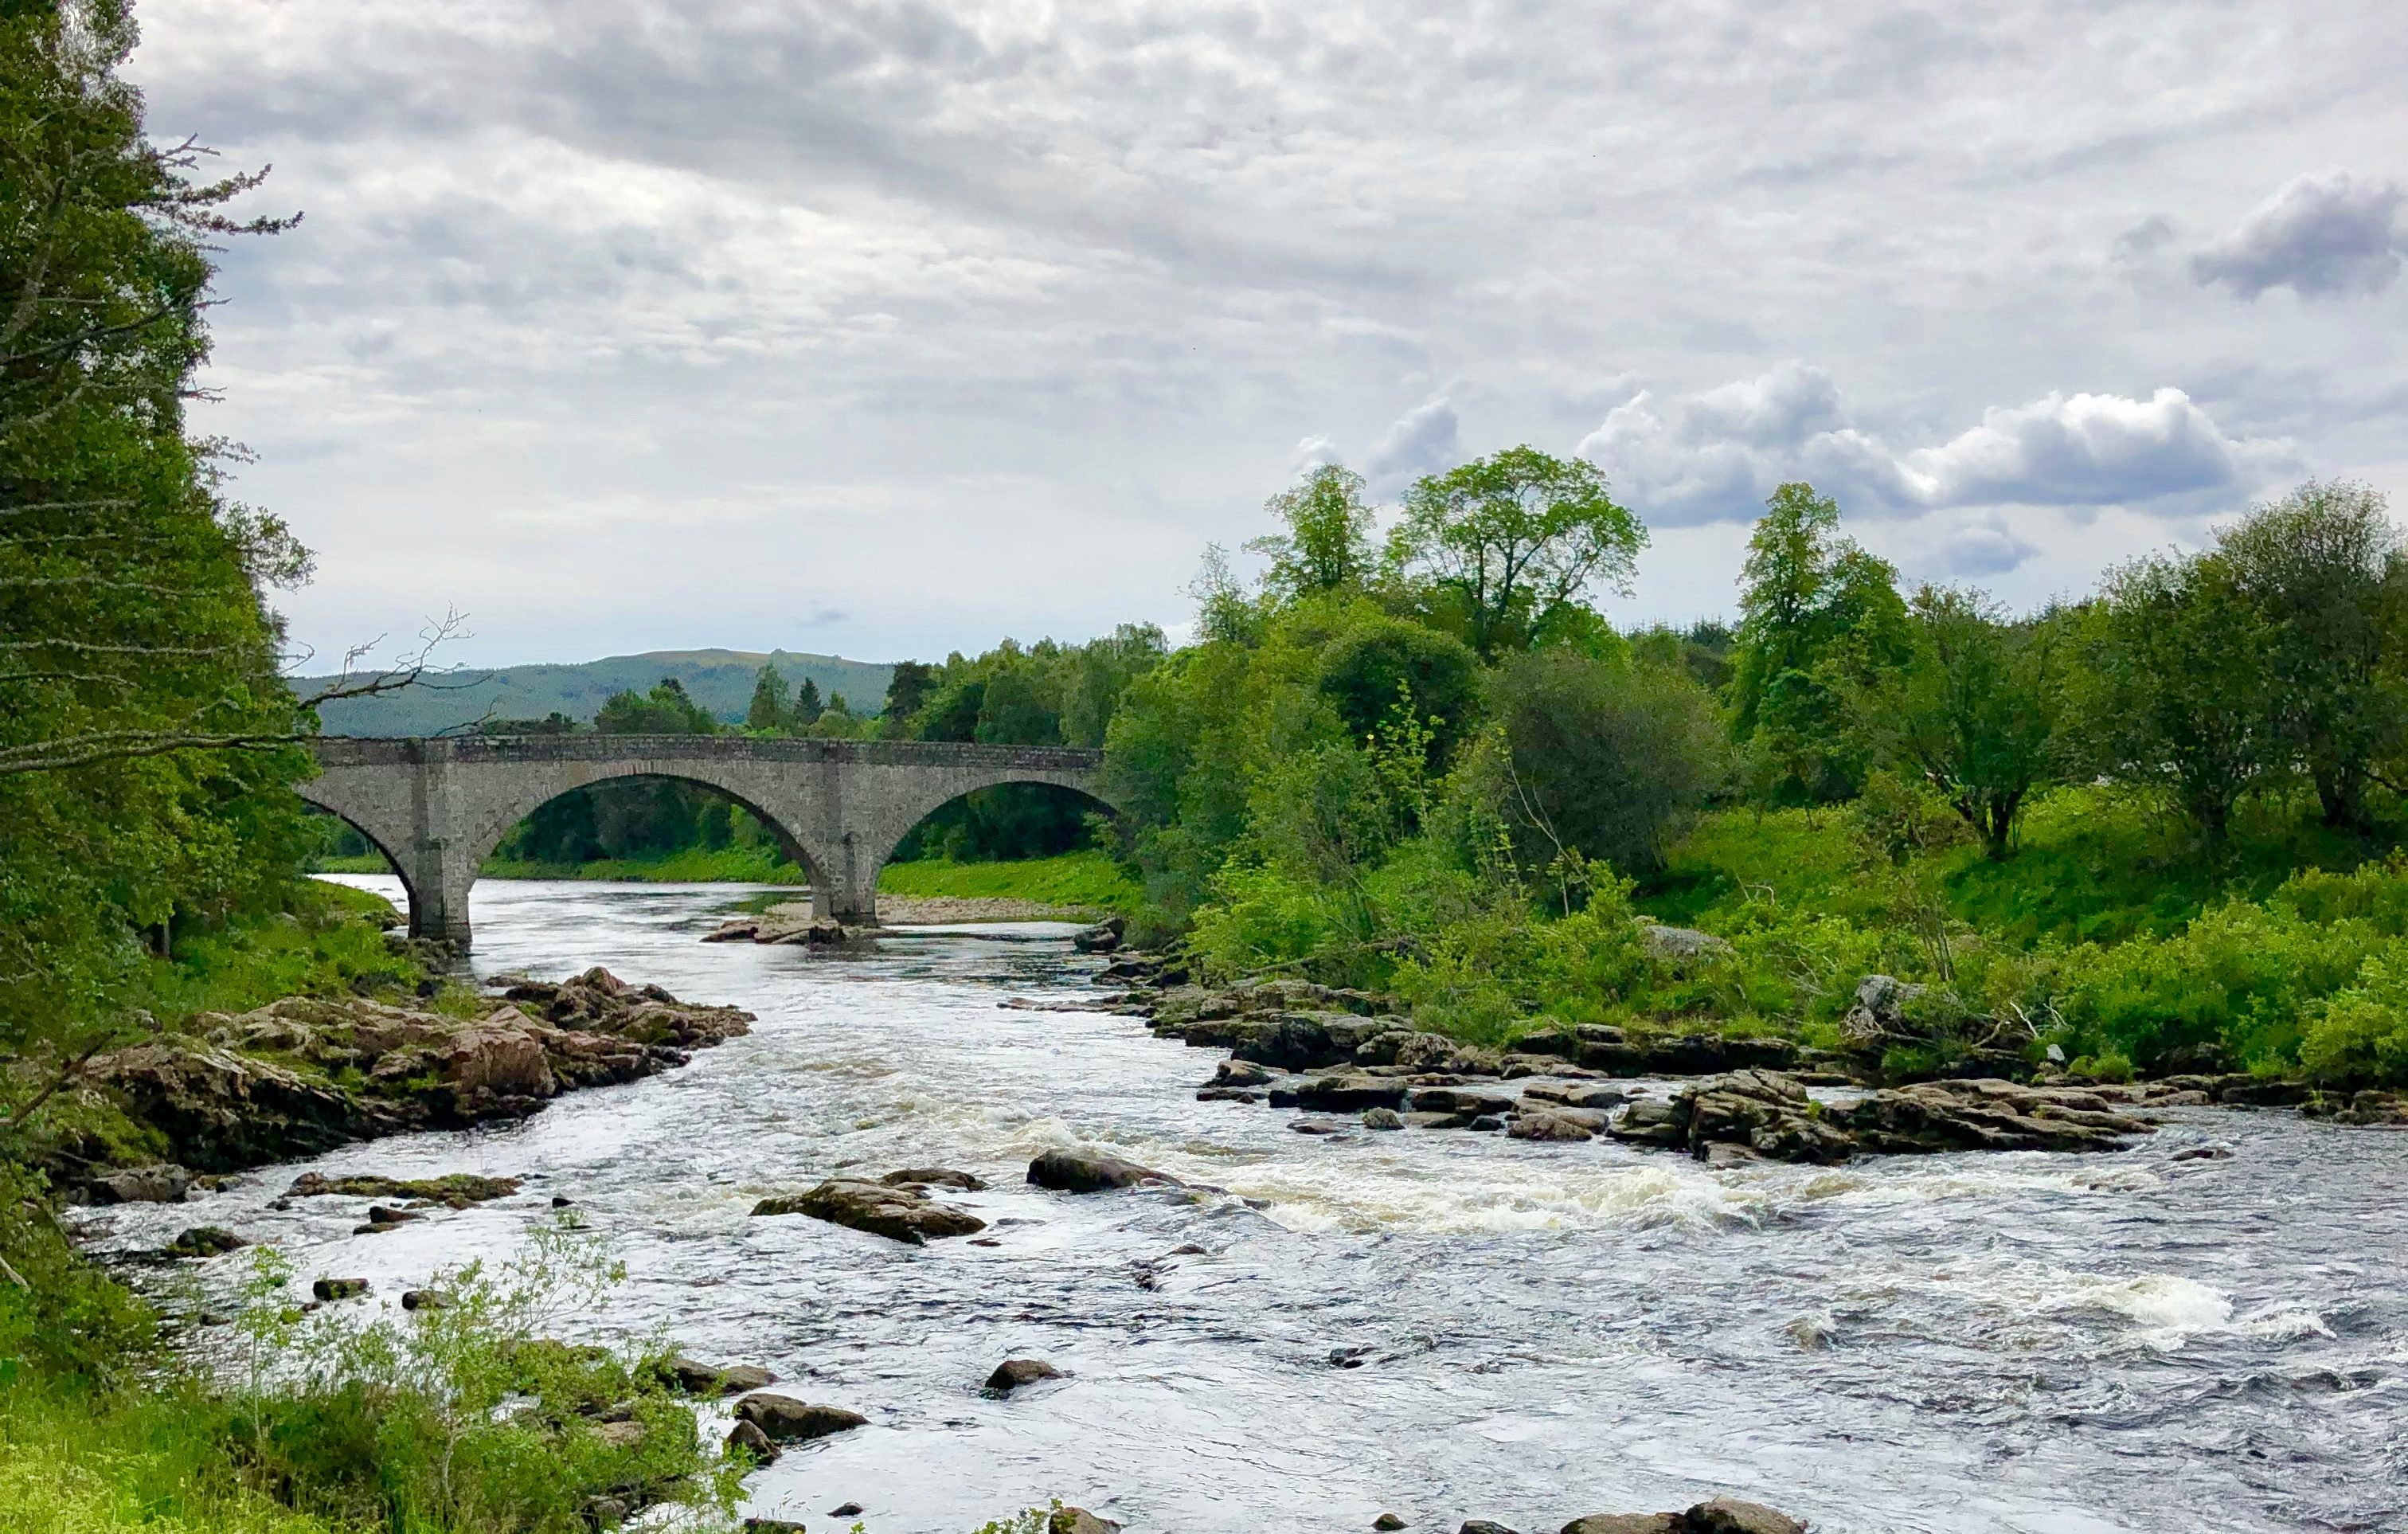 The boys were swimming in the River Dee at Potarch, near Banchory